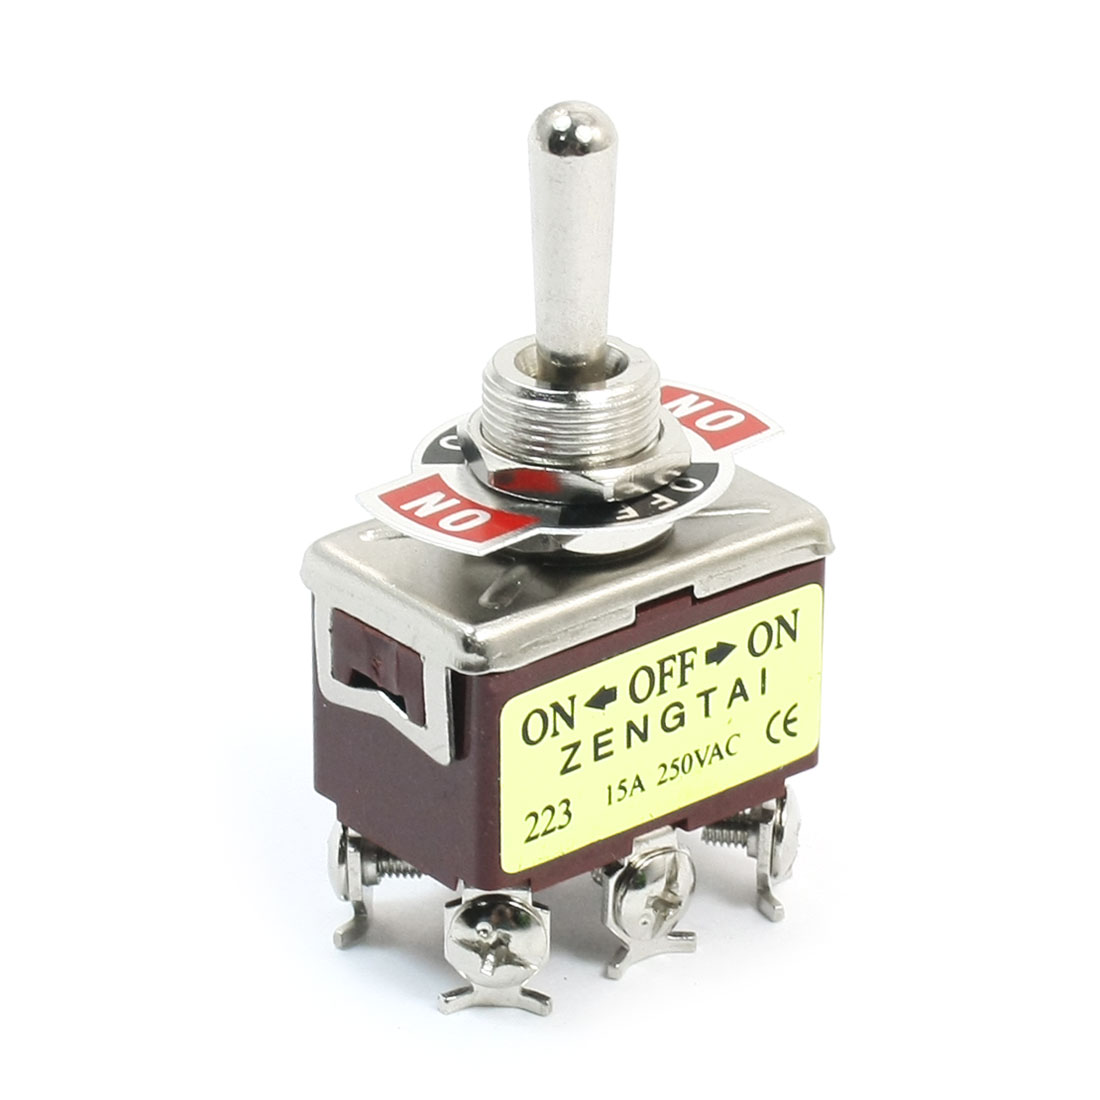 11mm Panel Mount DPDT ON/OFF/ON 3 Position Toggle Switch AC 250V 15A E-TEN223